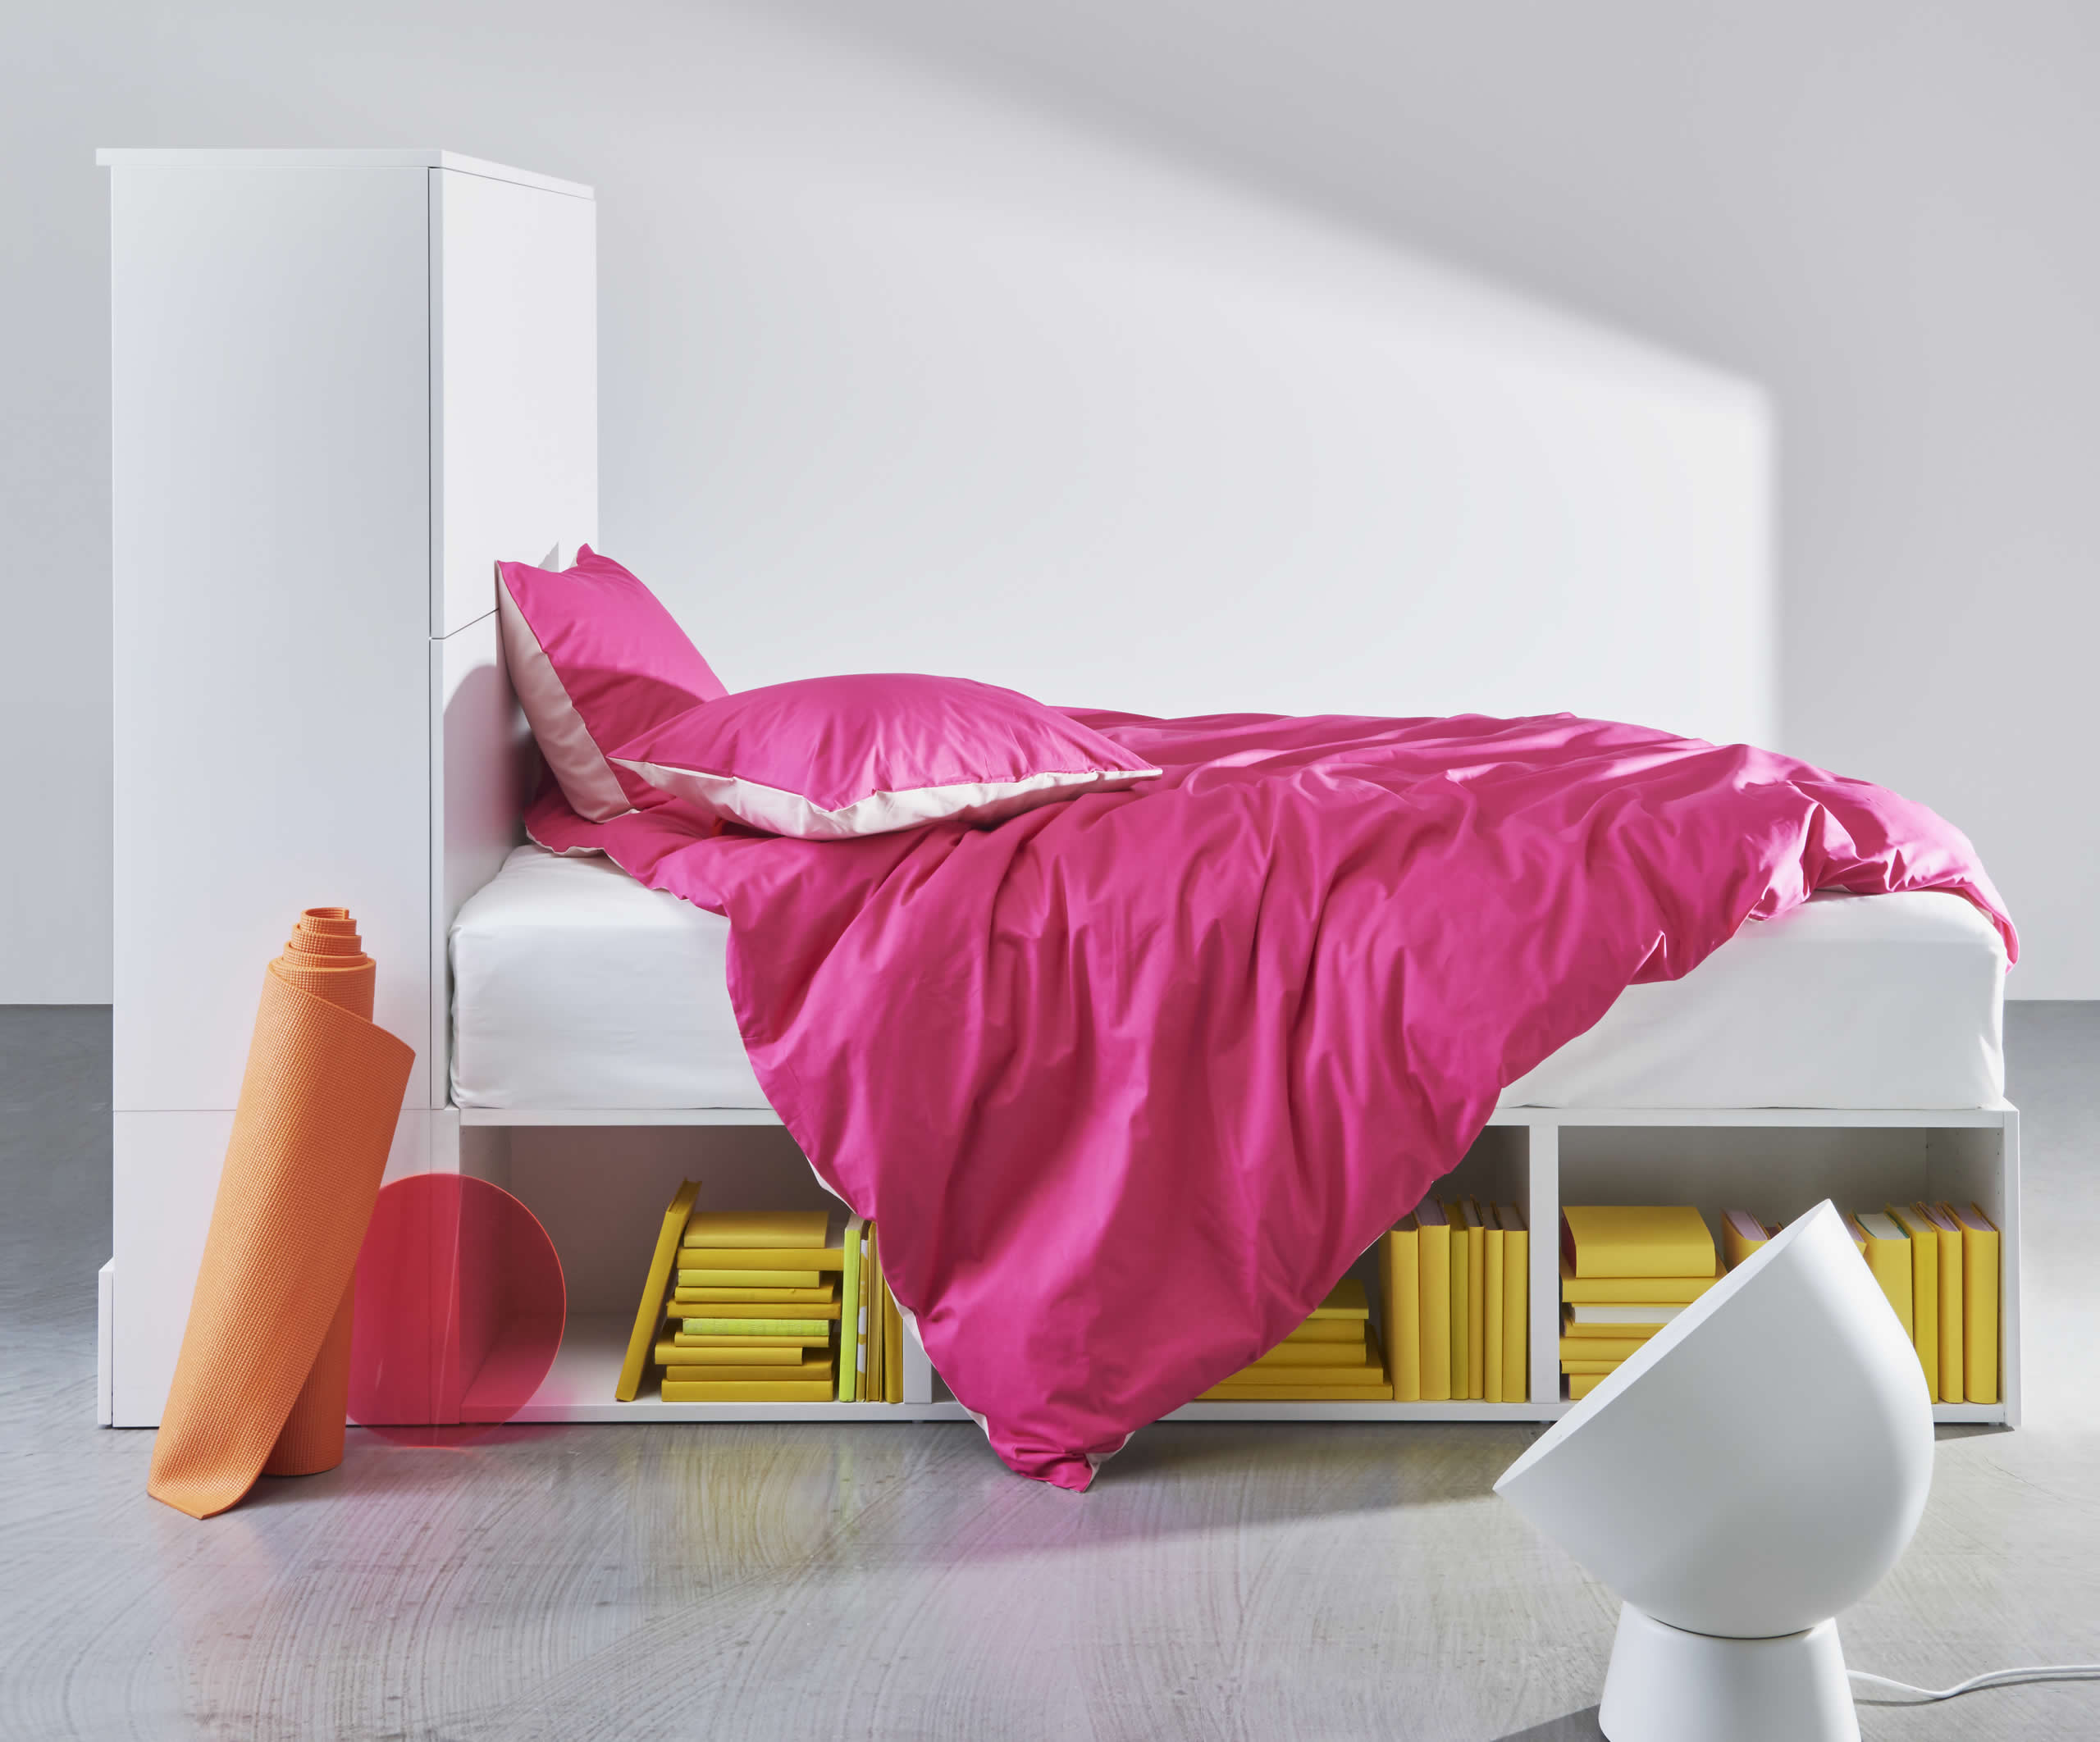 IKEA Ideas - Bright new bedroom ideas